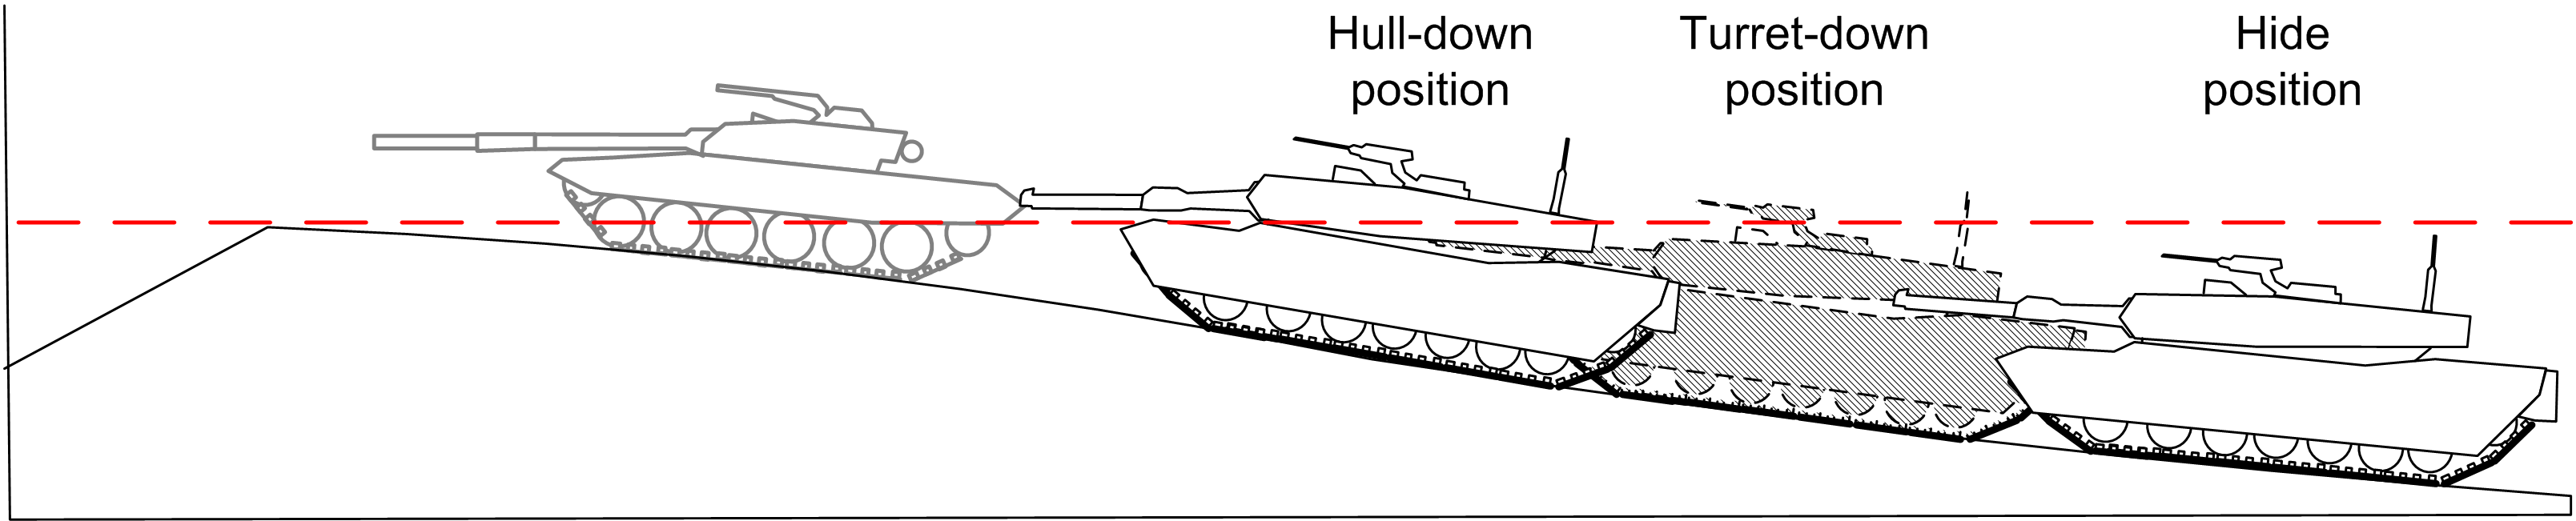 Hull_down_tank_diagram.png